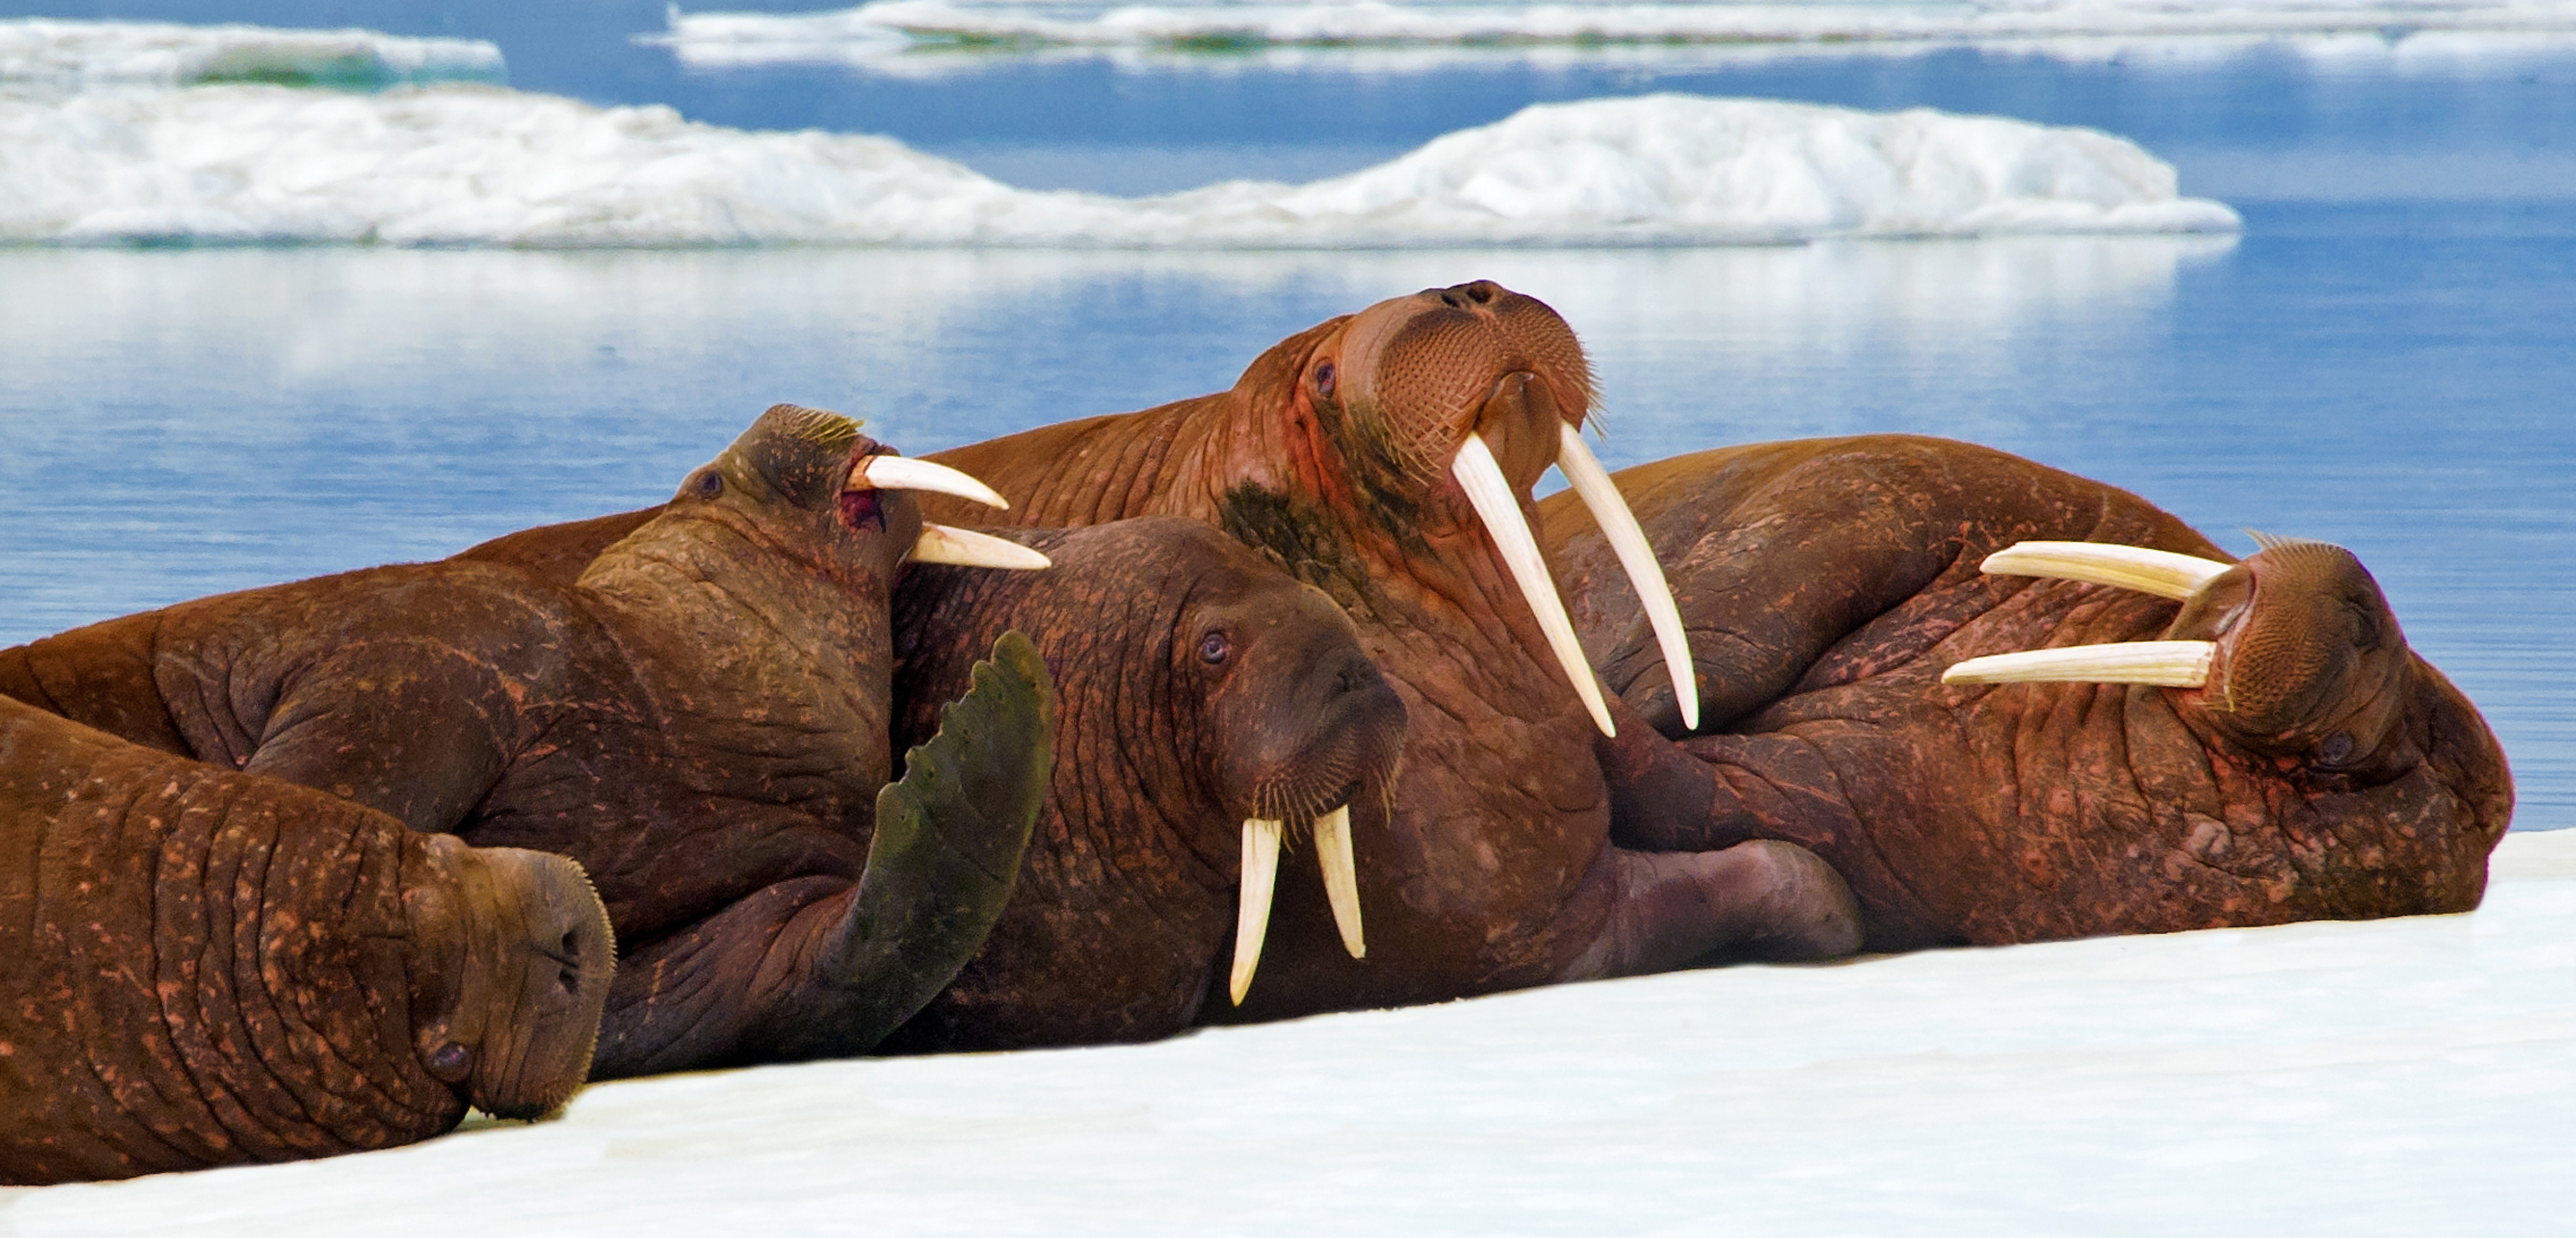 indigenous cooperation a model for walrus conservation hakai magazine